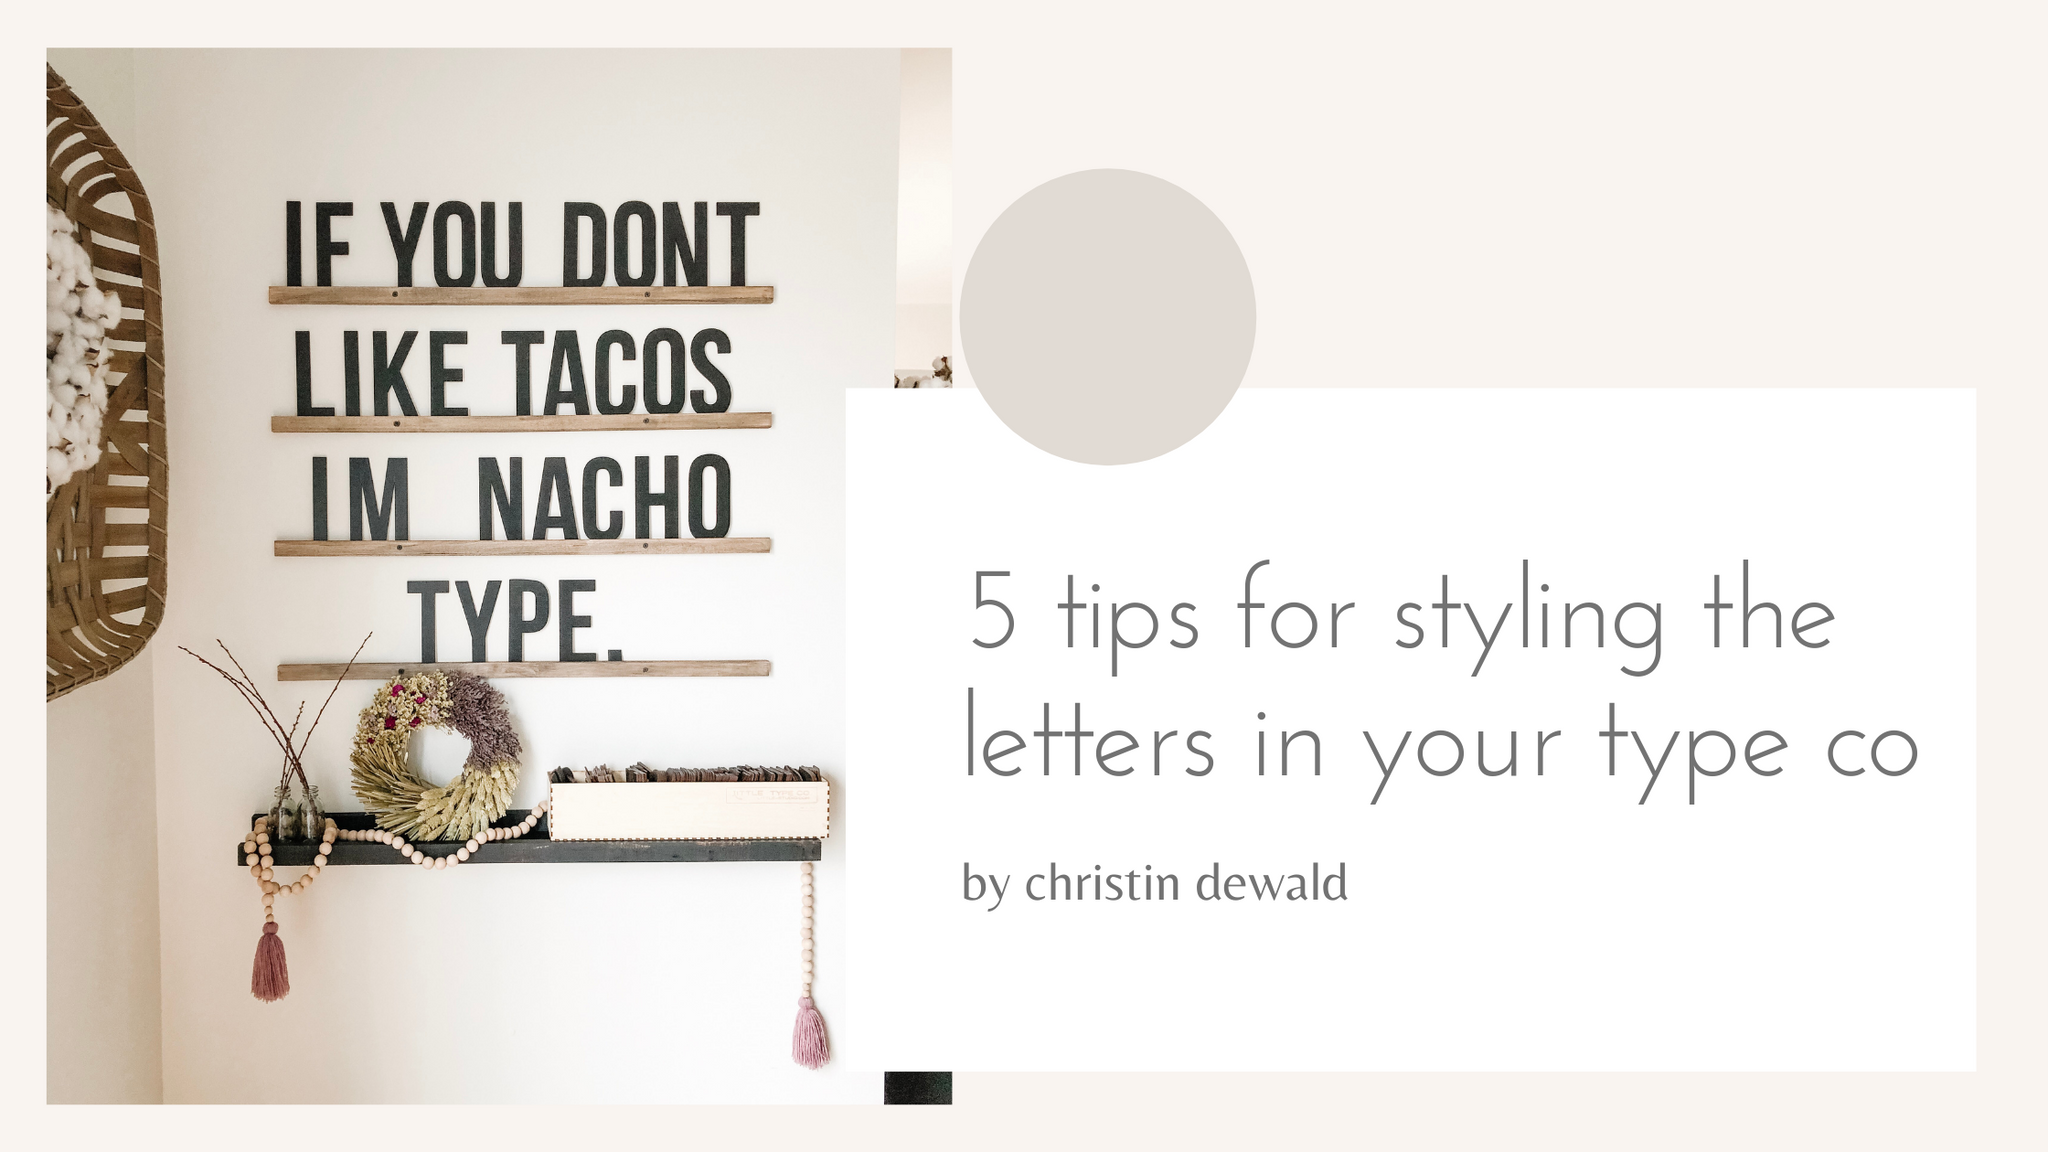 5 tips for styling the letters in your Type Co